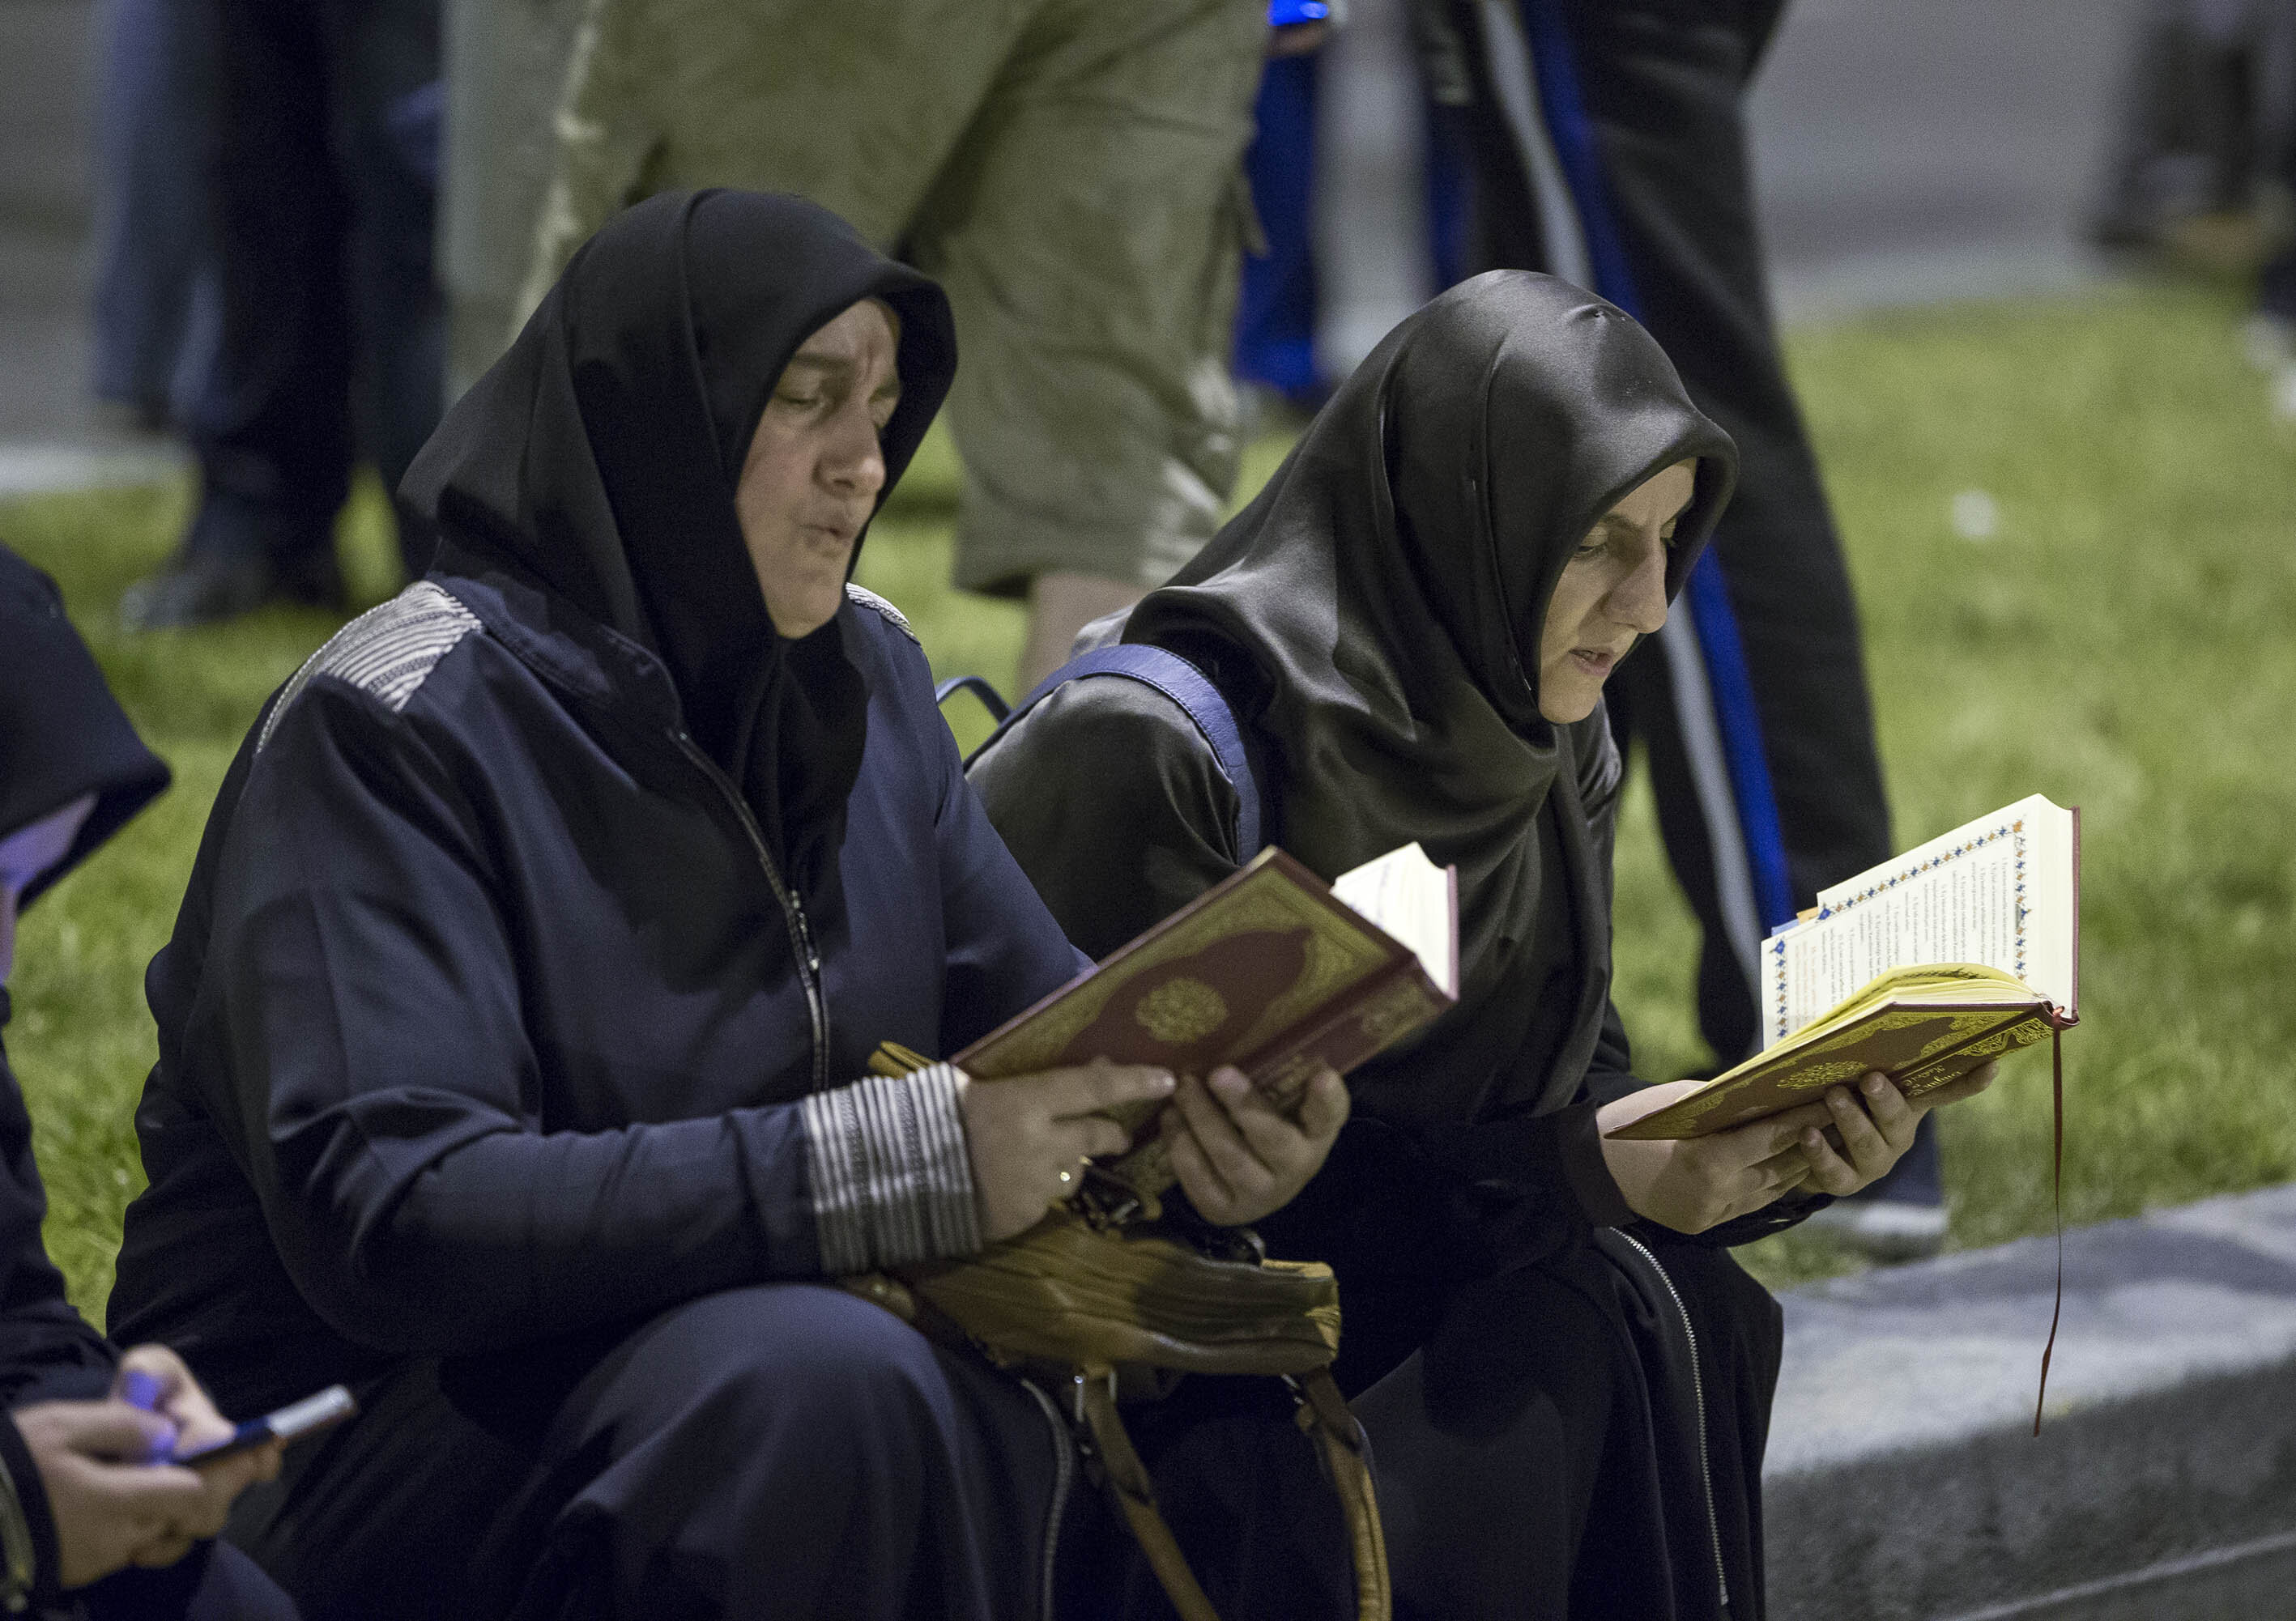 Civilians recited the Quran in front of the Presidential Palace complex.